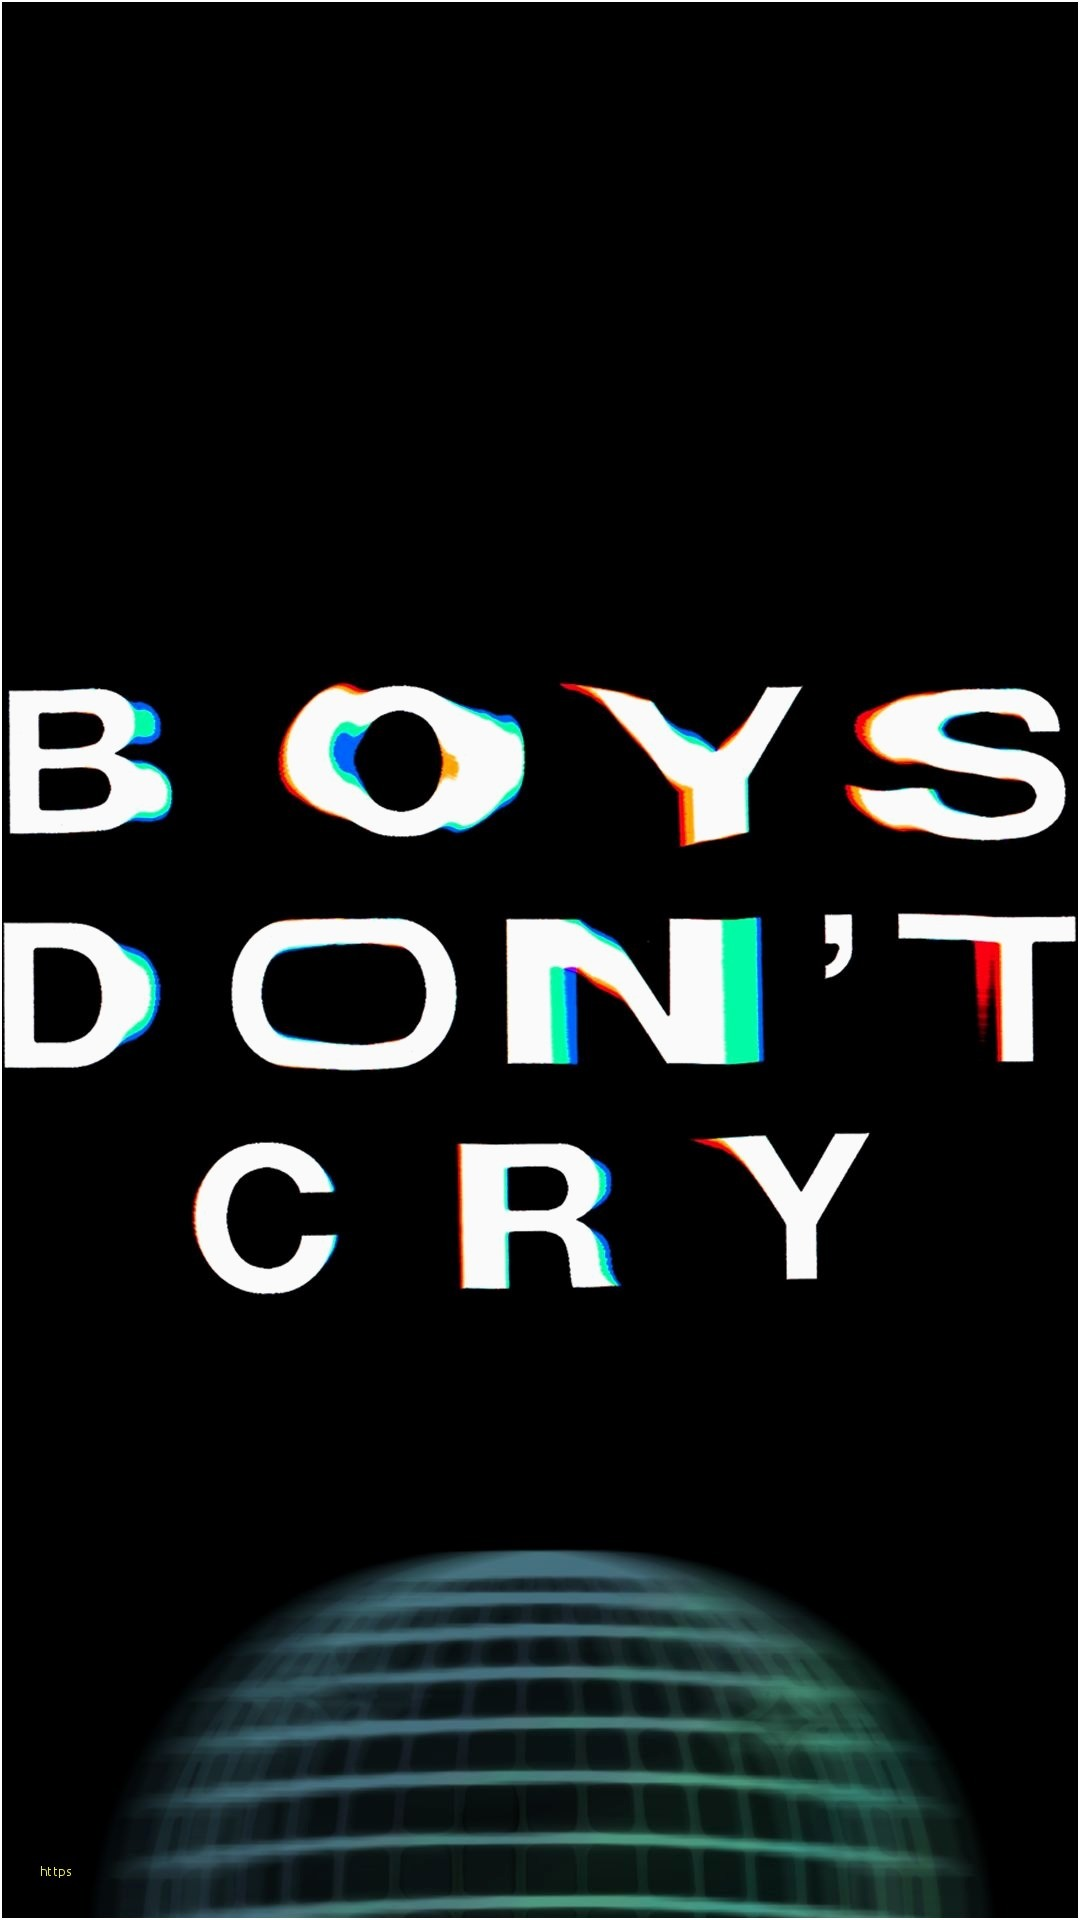 1080x1920 Simple boys dont cry wallpaper for phones